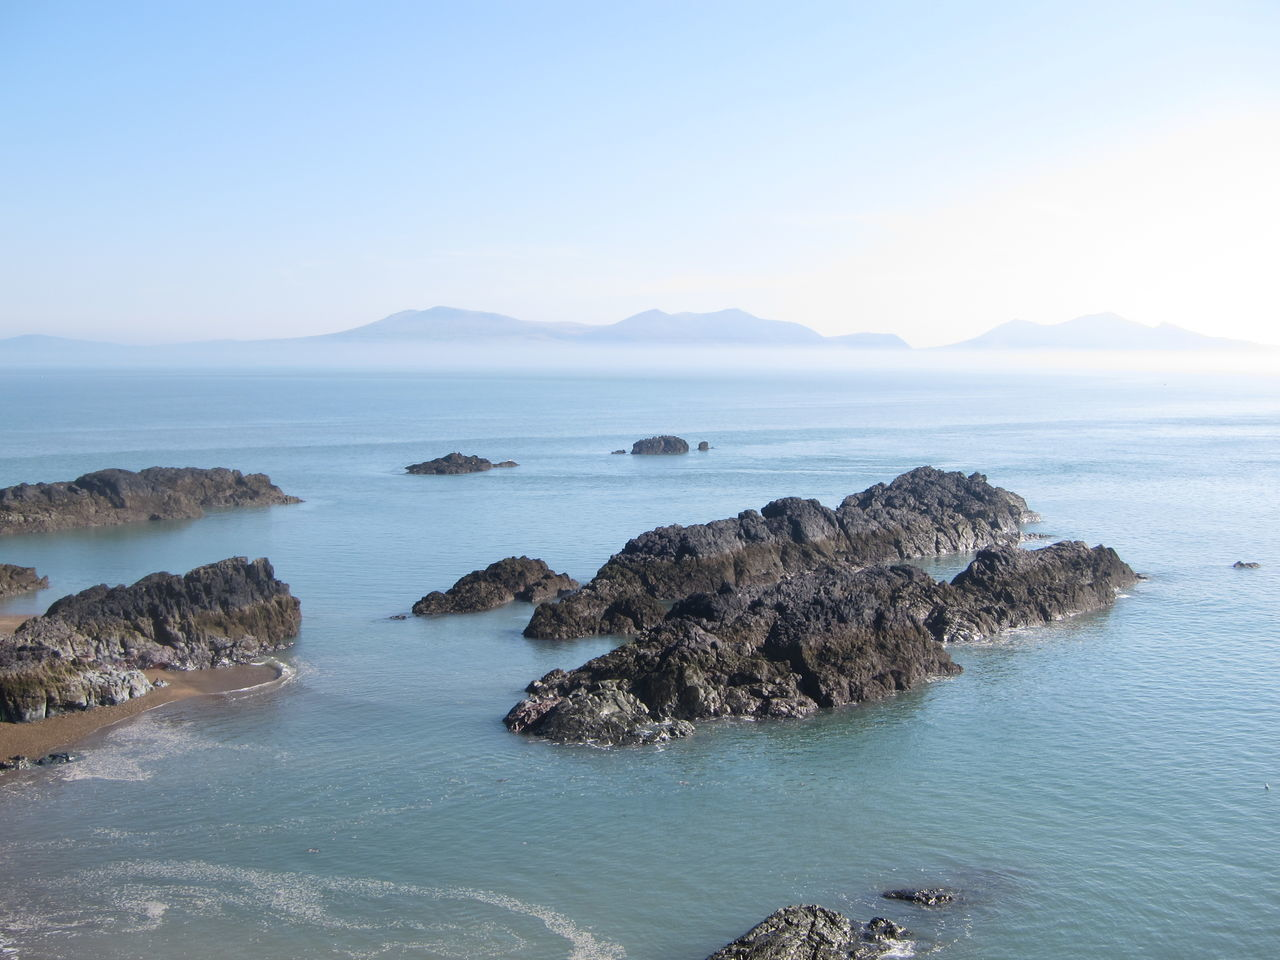 nature, rock - object, sea, beauty in nature, scenics, tranquility, tranquil scene, water, no people, outdoors, sky, mountain, day